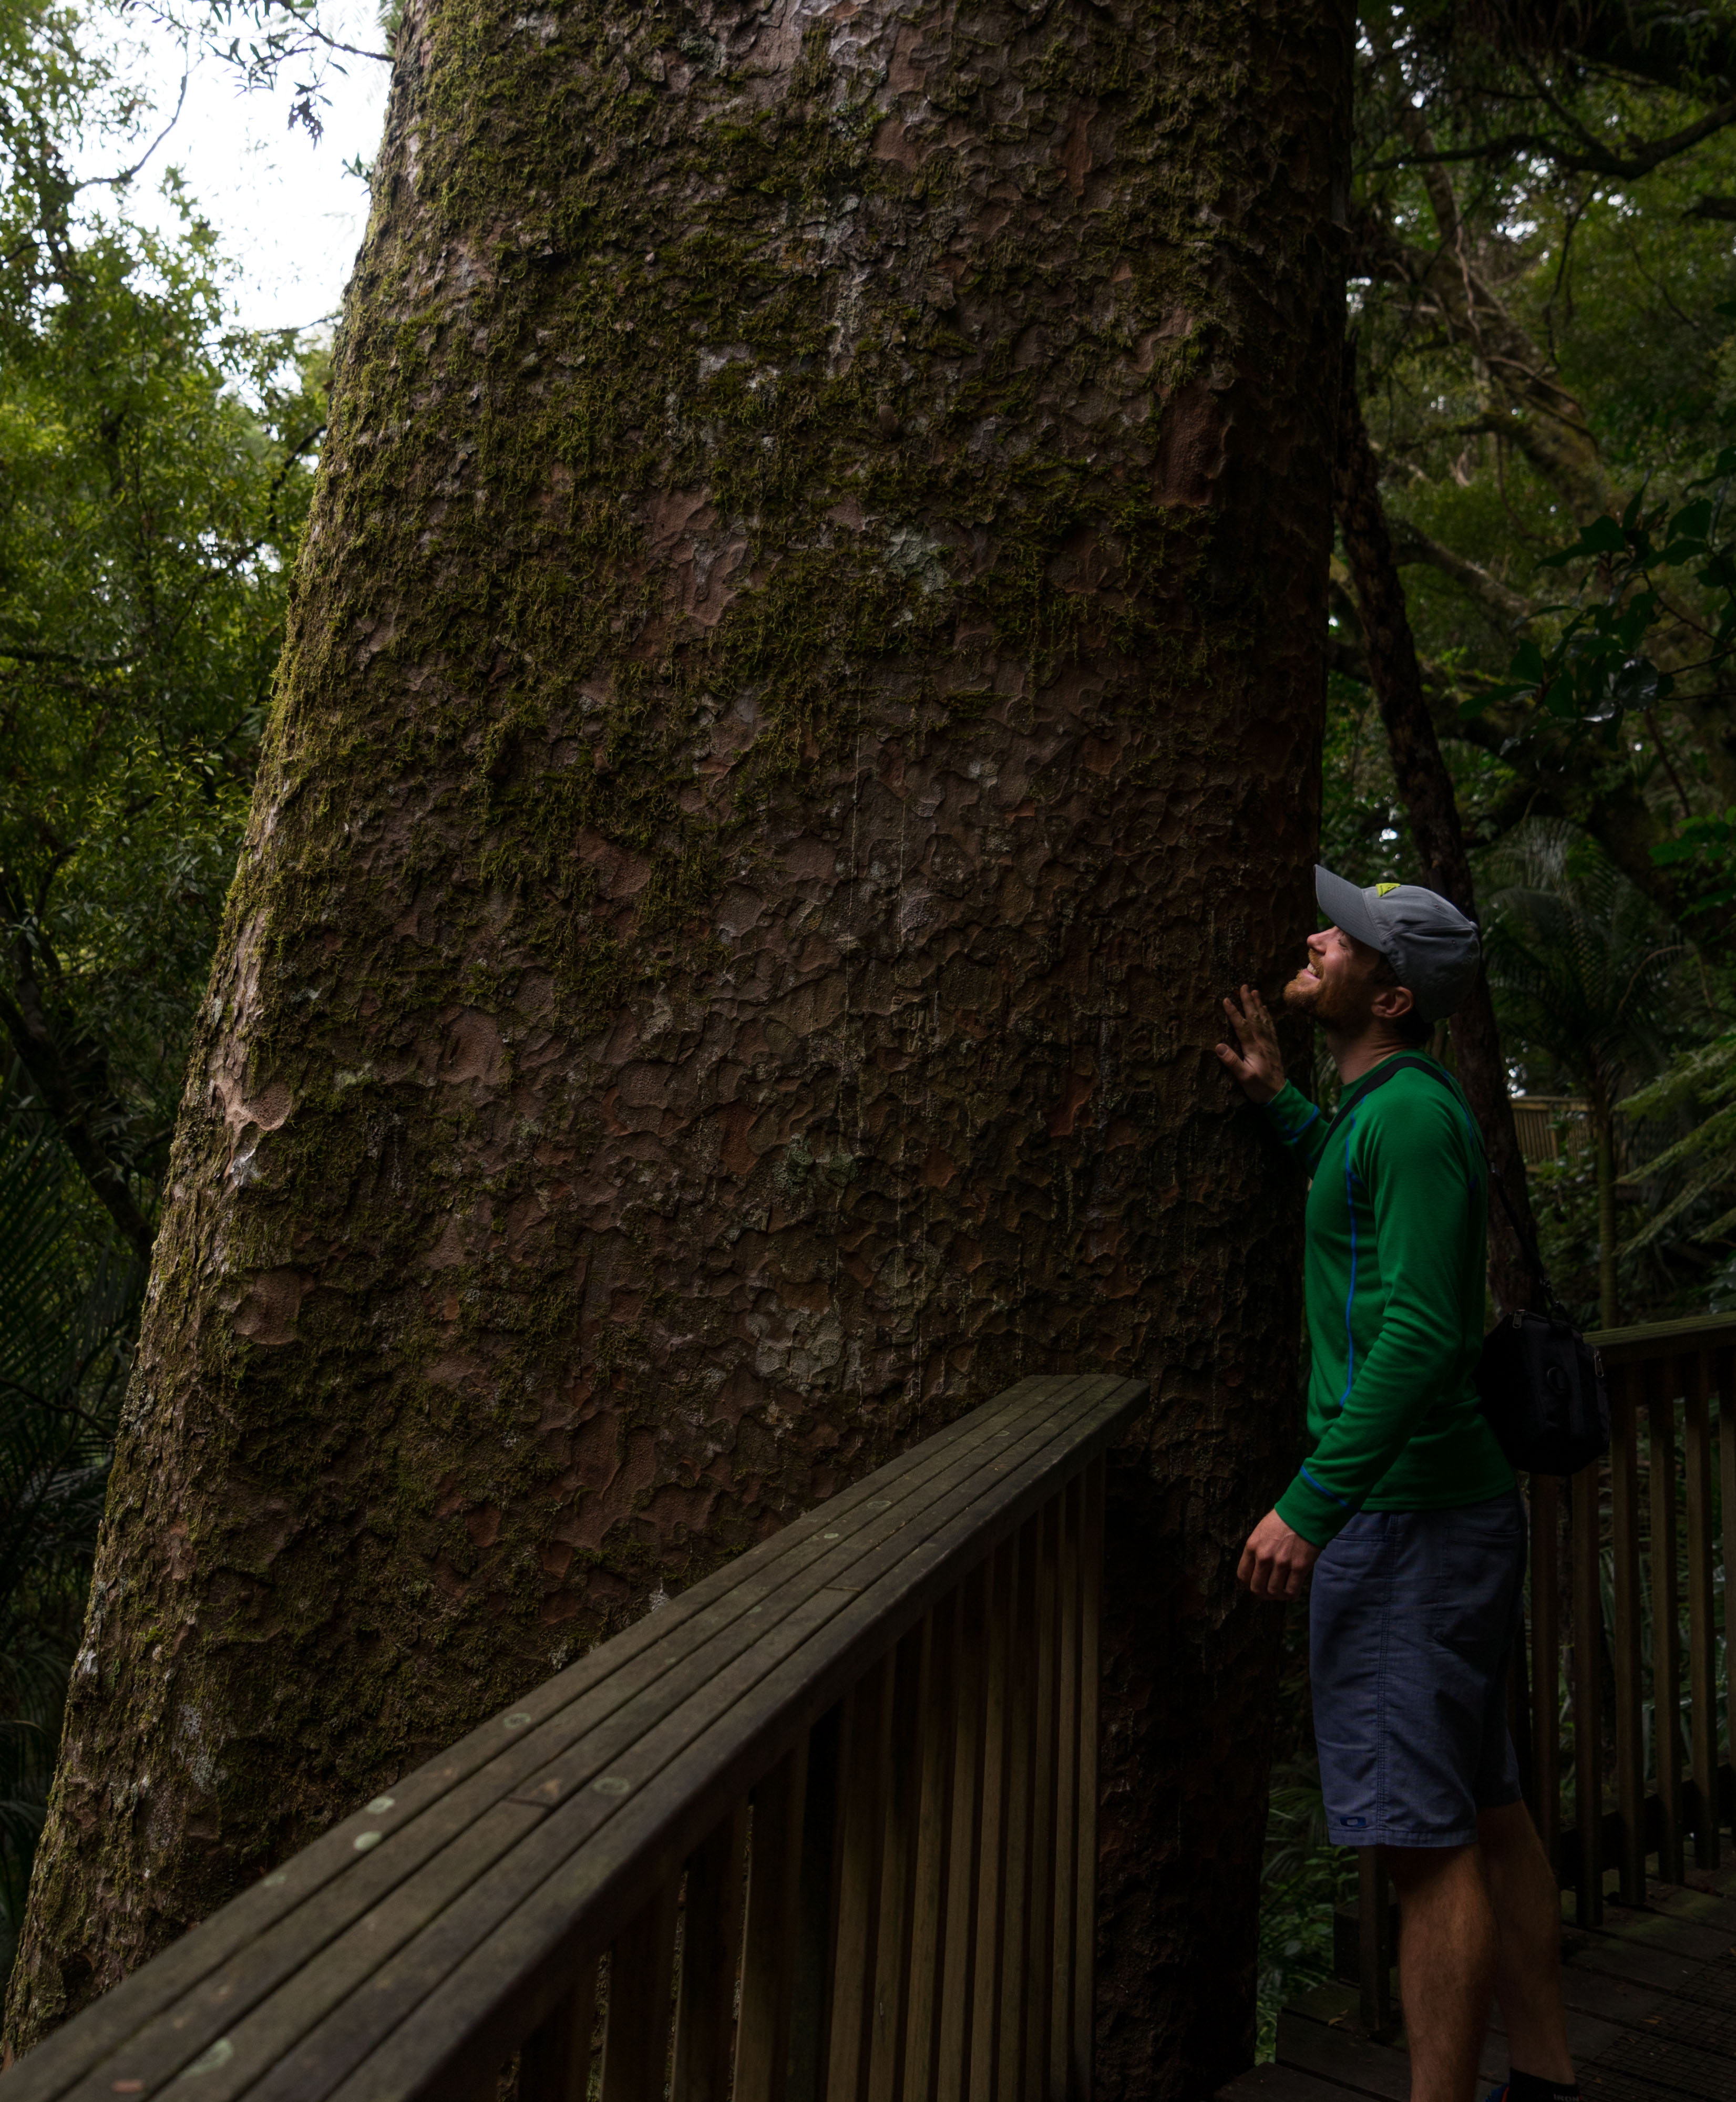 Kauri tree, Northland, New Zealand